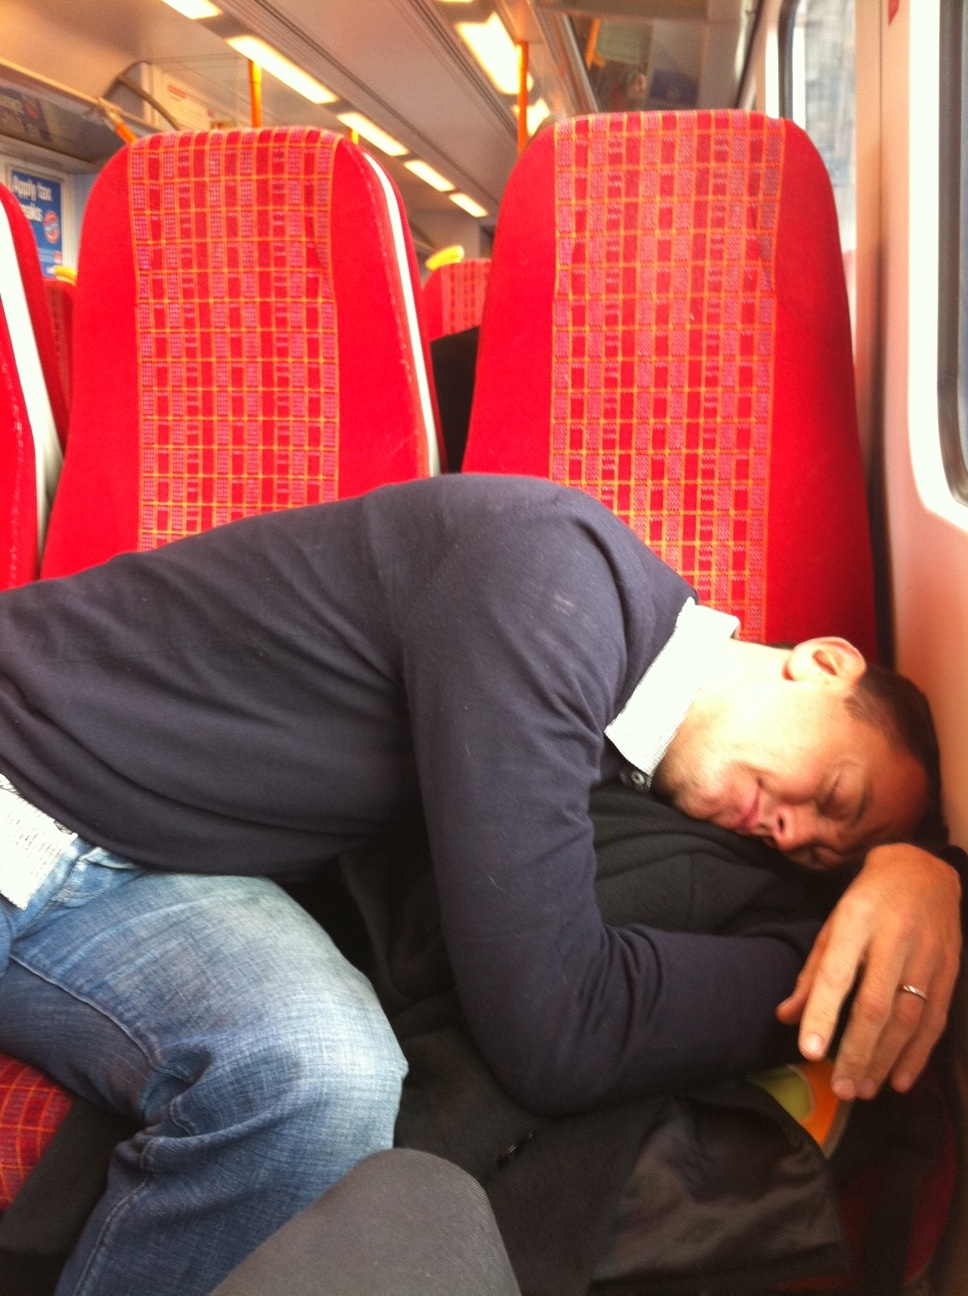 Asleep in UK